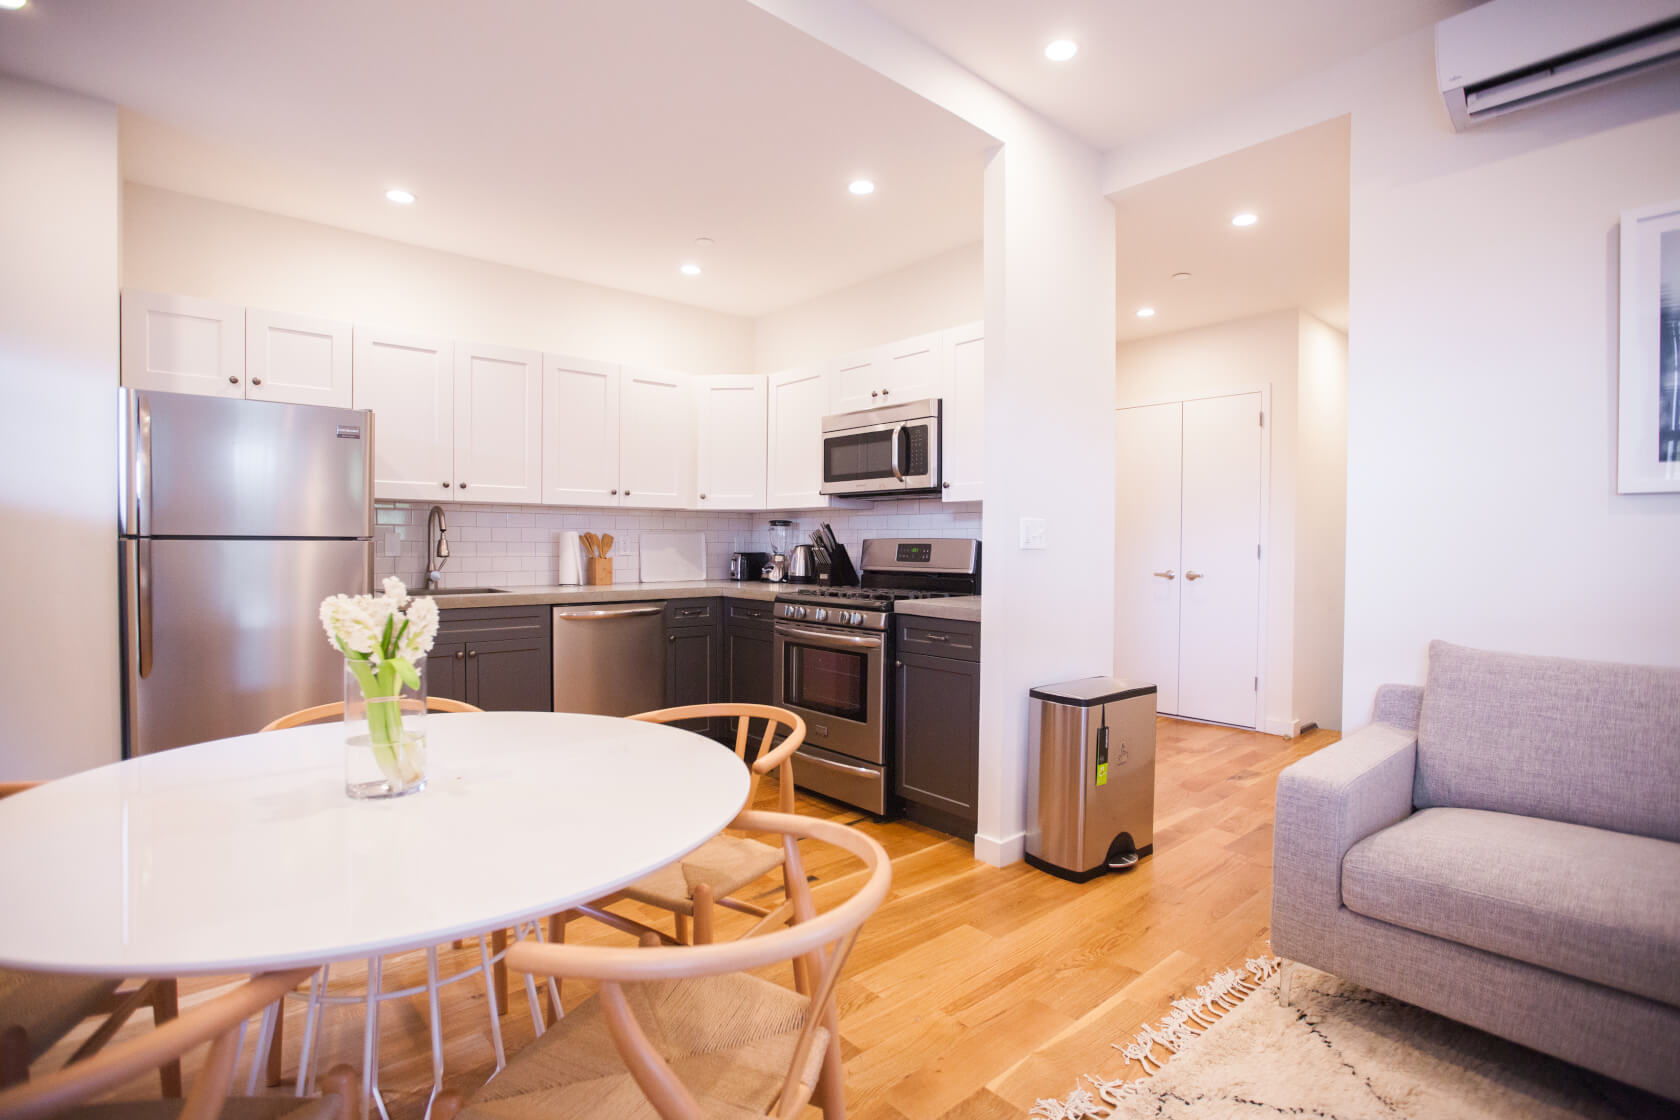 Every coliving suite at Common has a high-end kitchen and fully furnished living room.